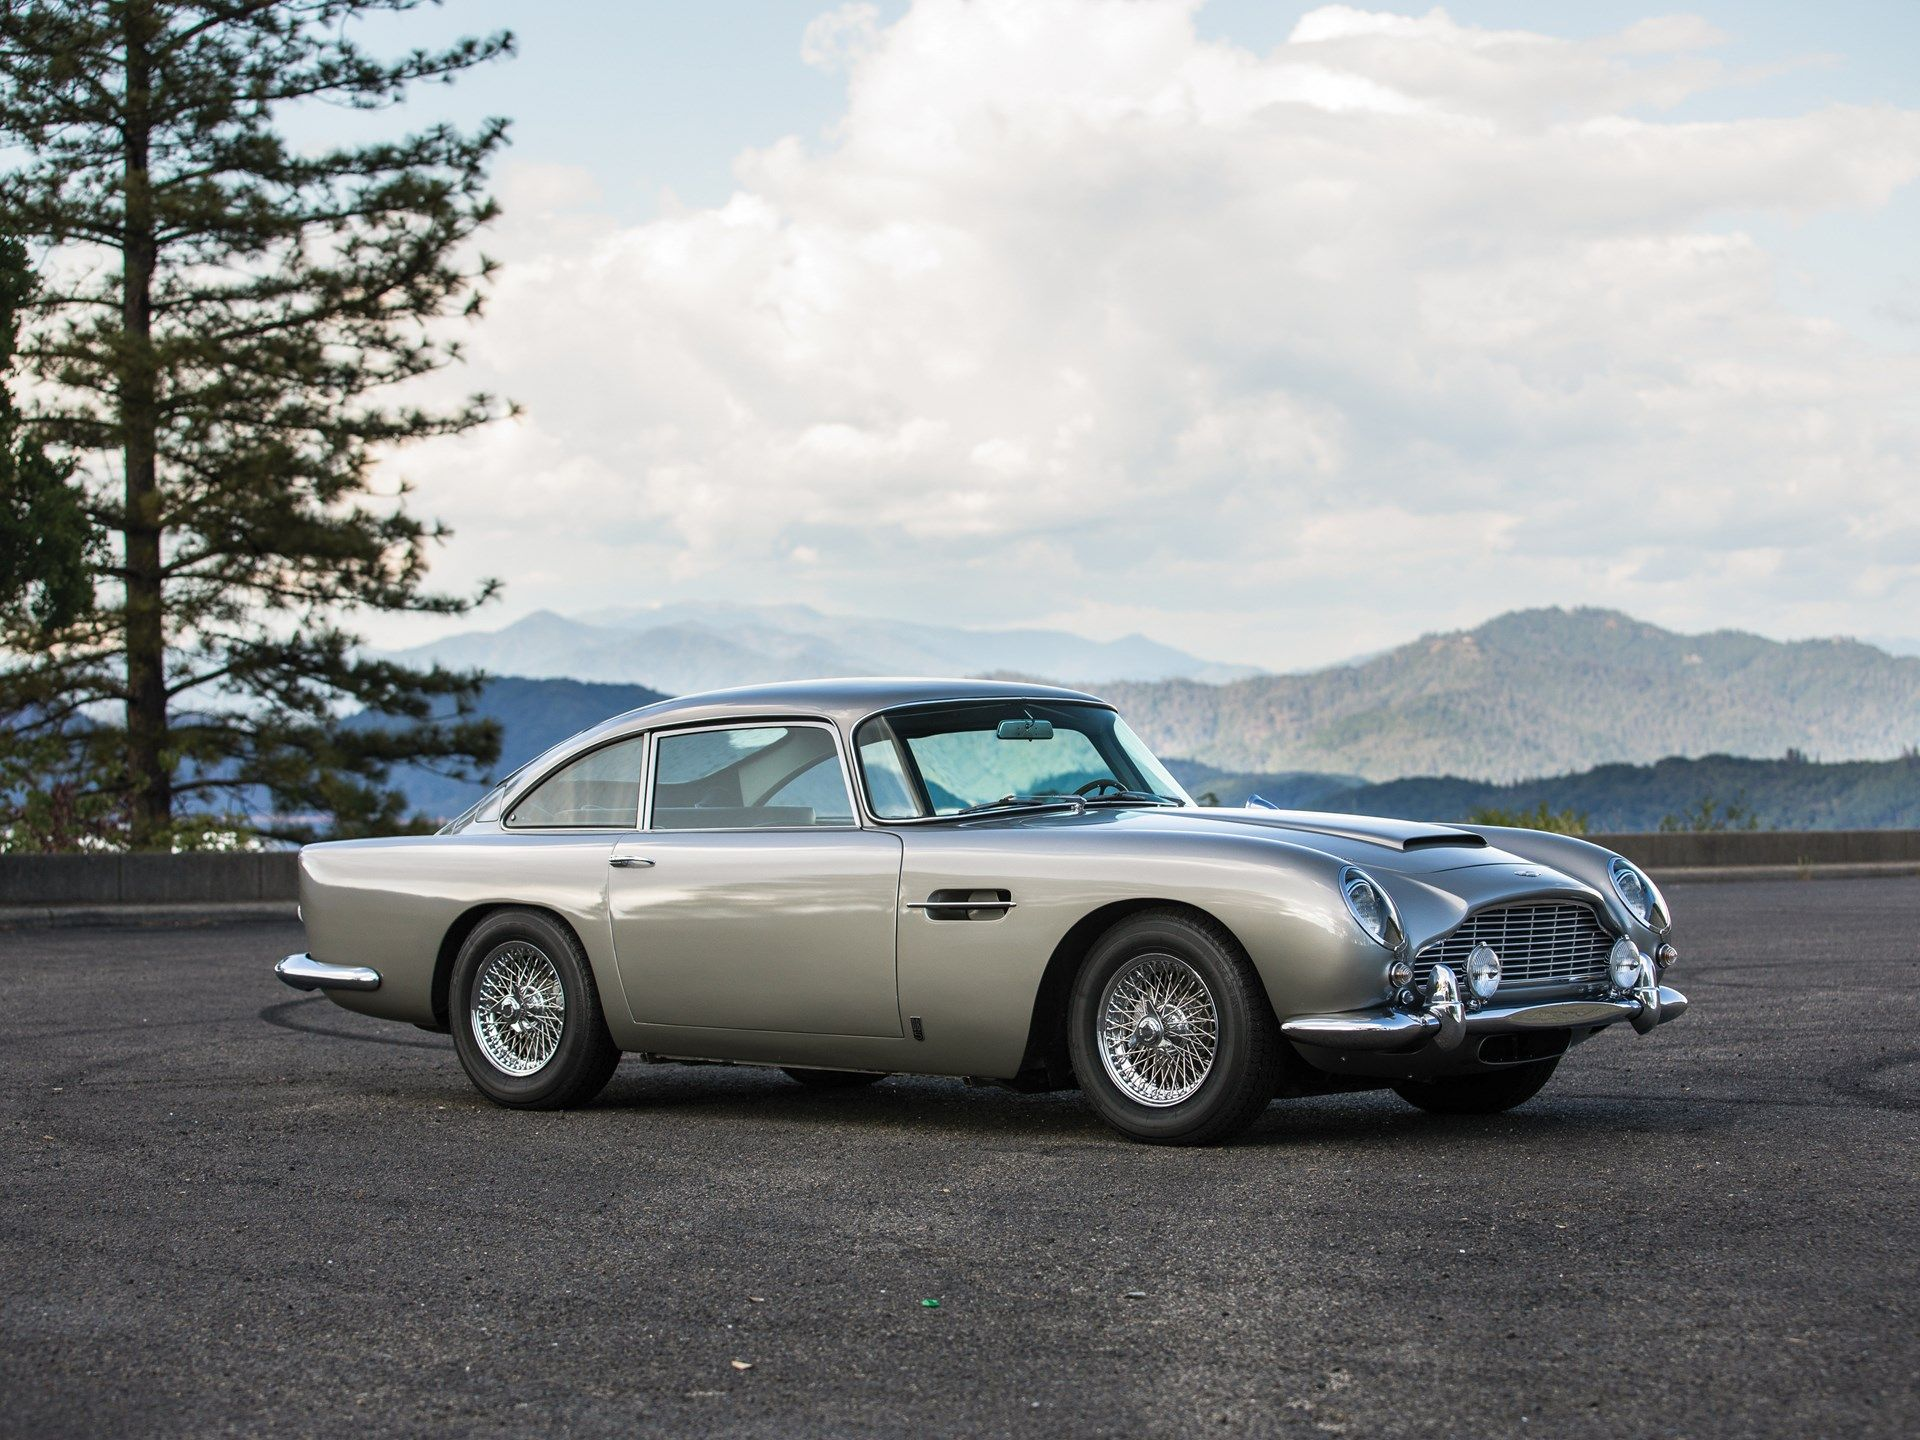 James Bond S Aston Martin Db5 Will Be Up For Auction This August Tatler Hong Kong